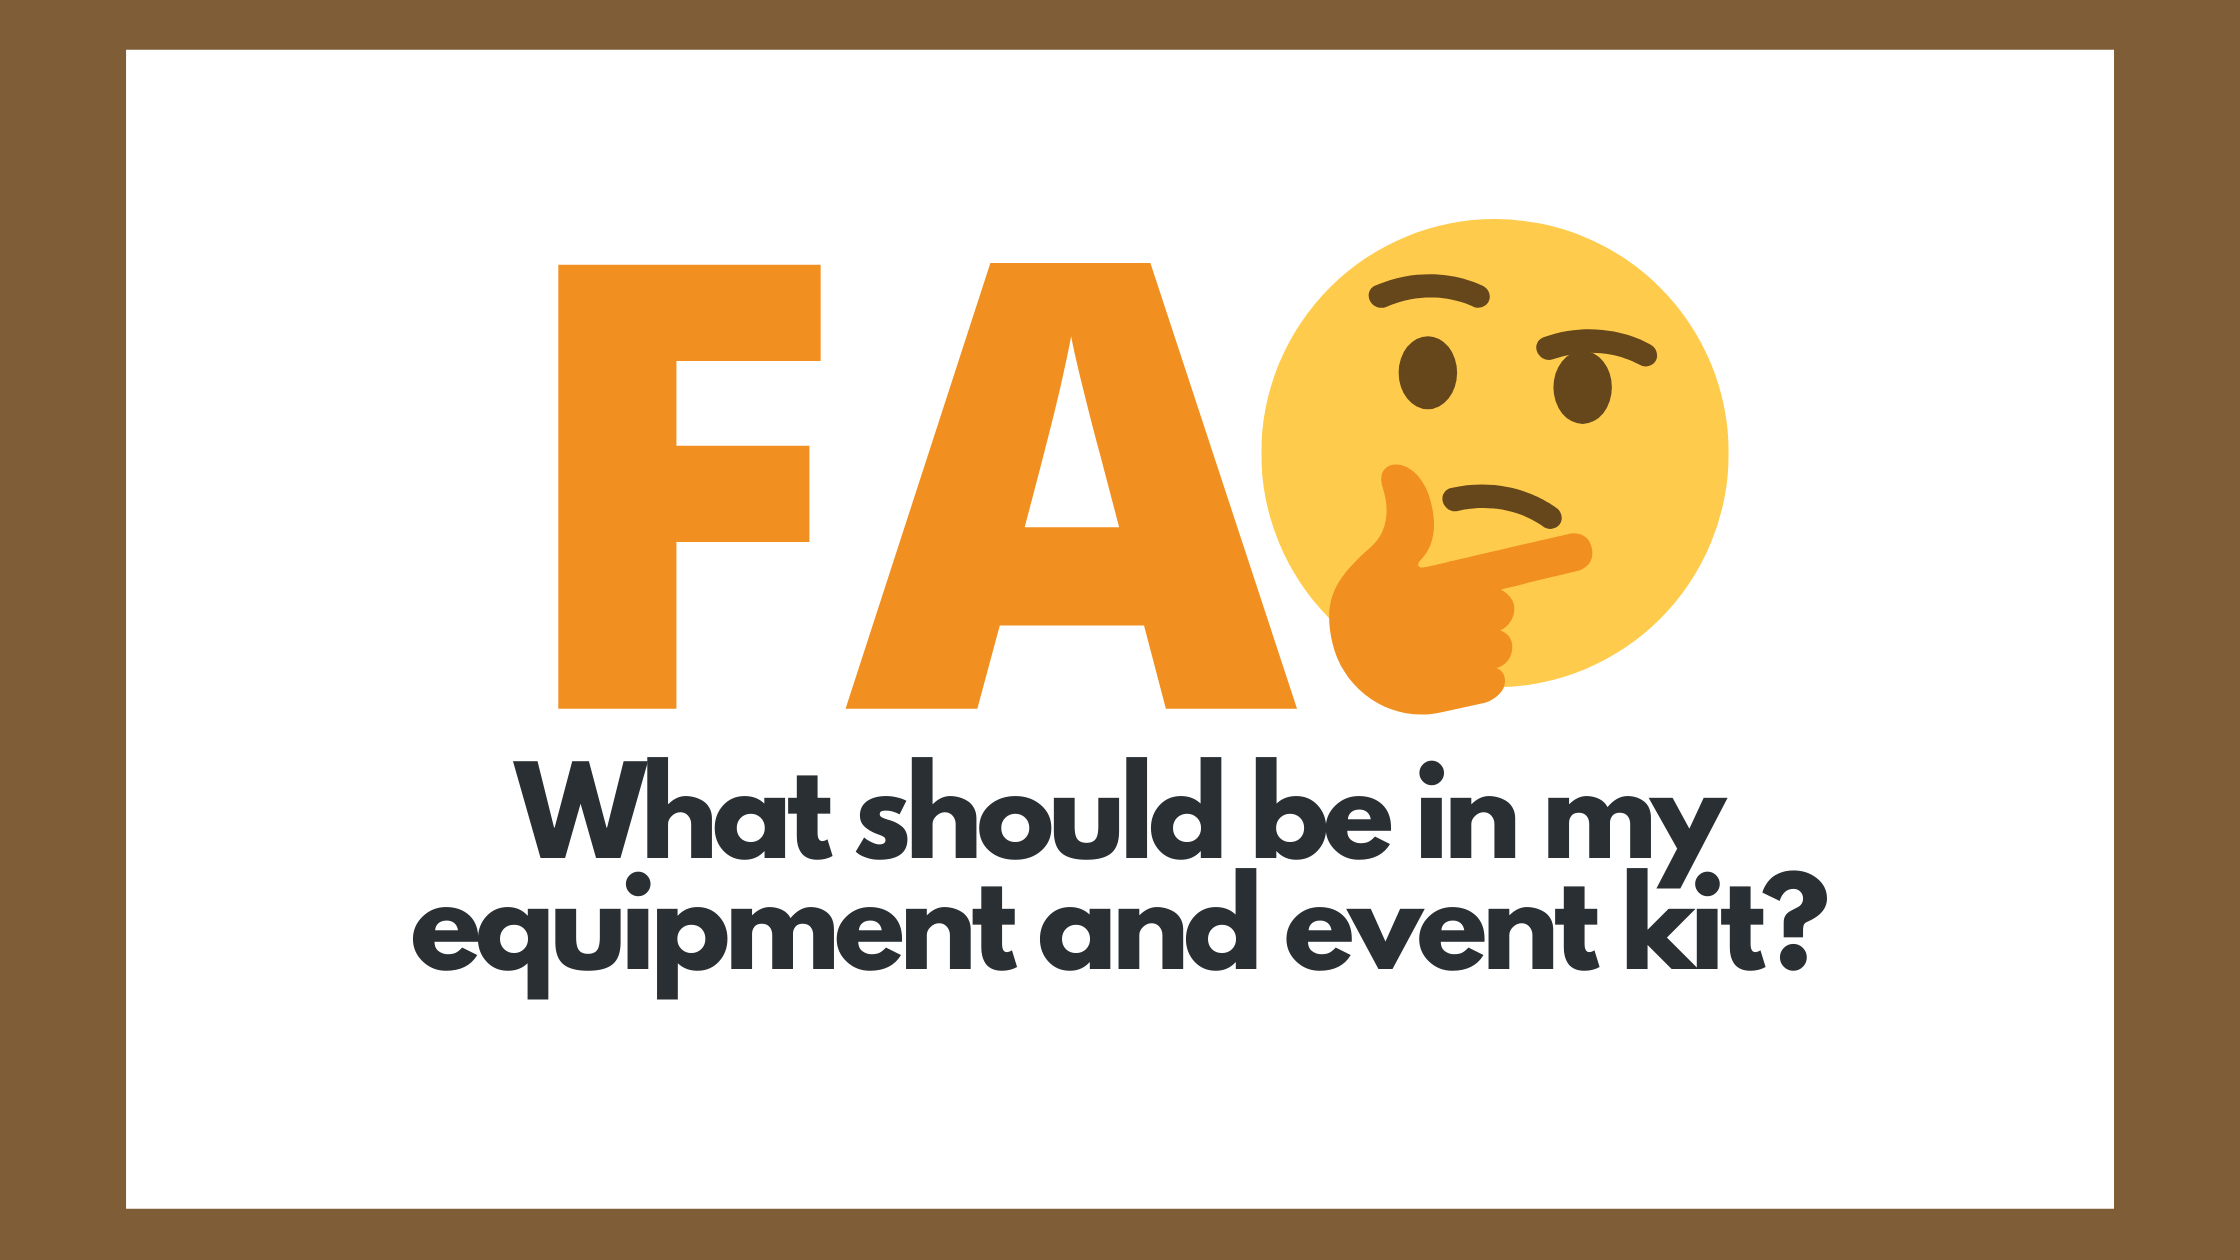 What should be in my equipment and event kit?